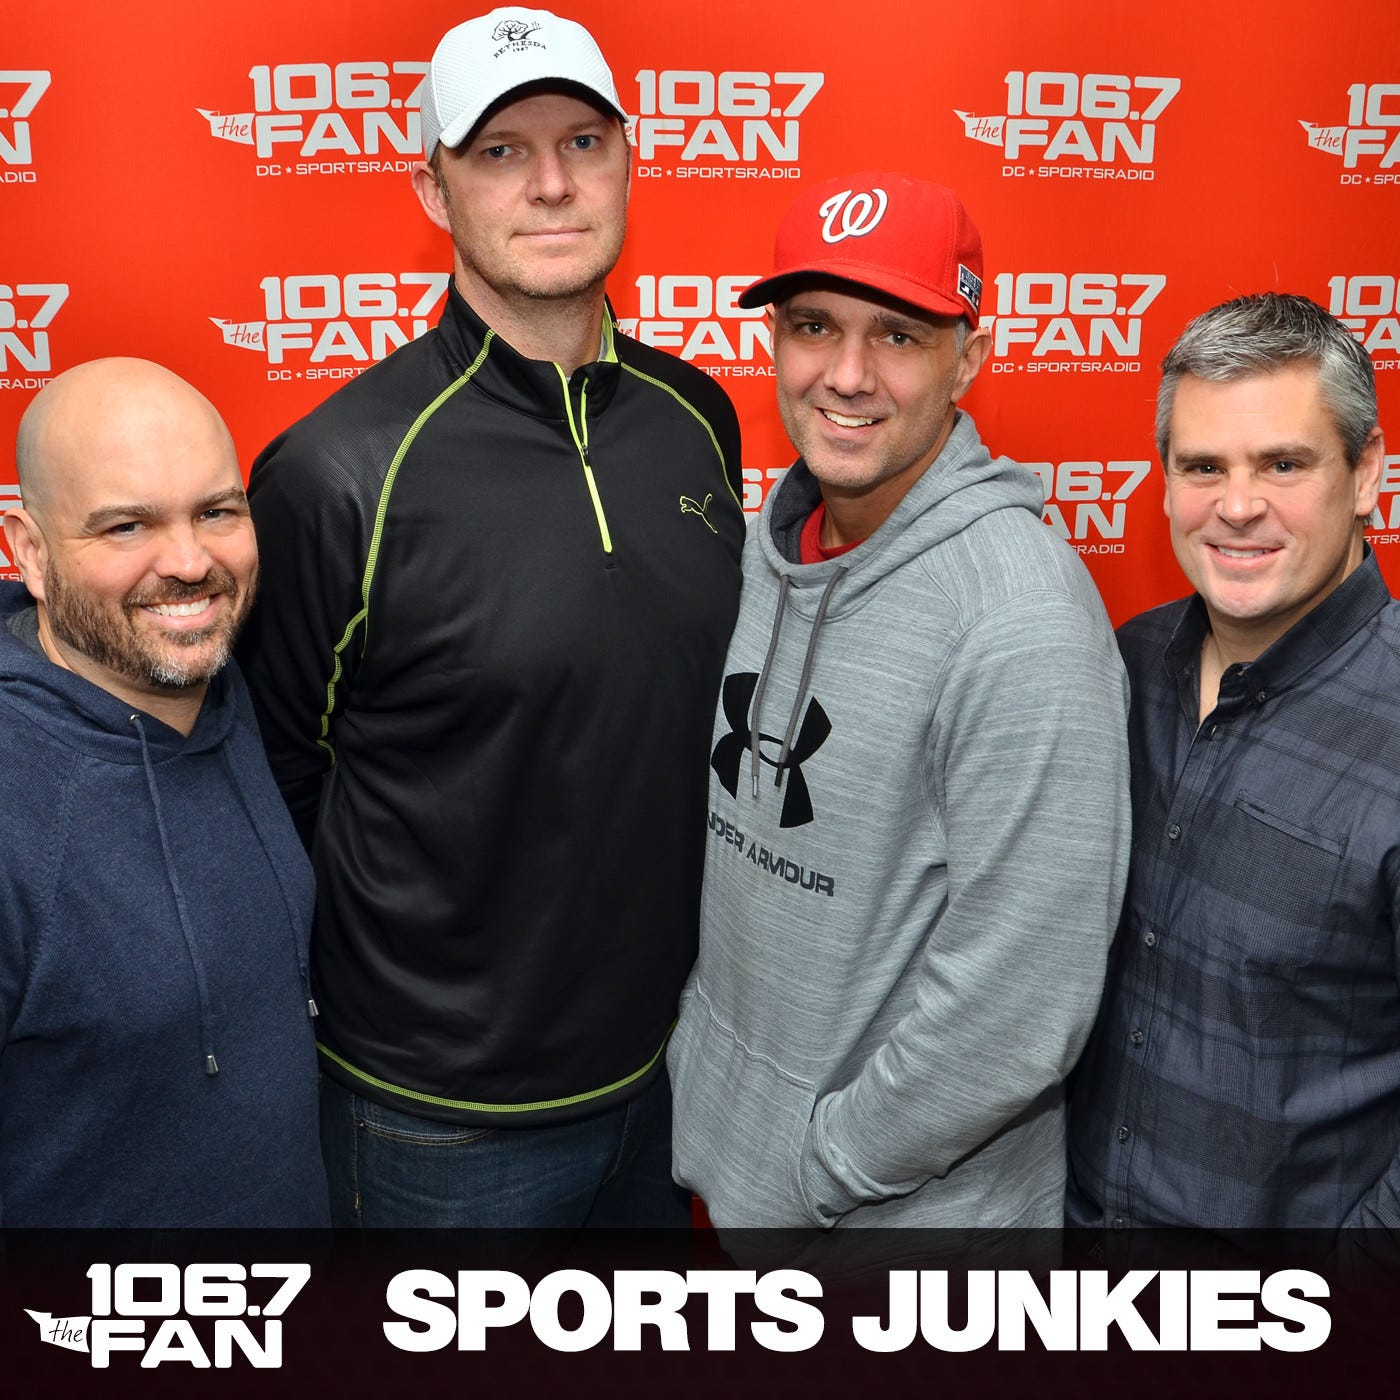 The Sports Junkies